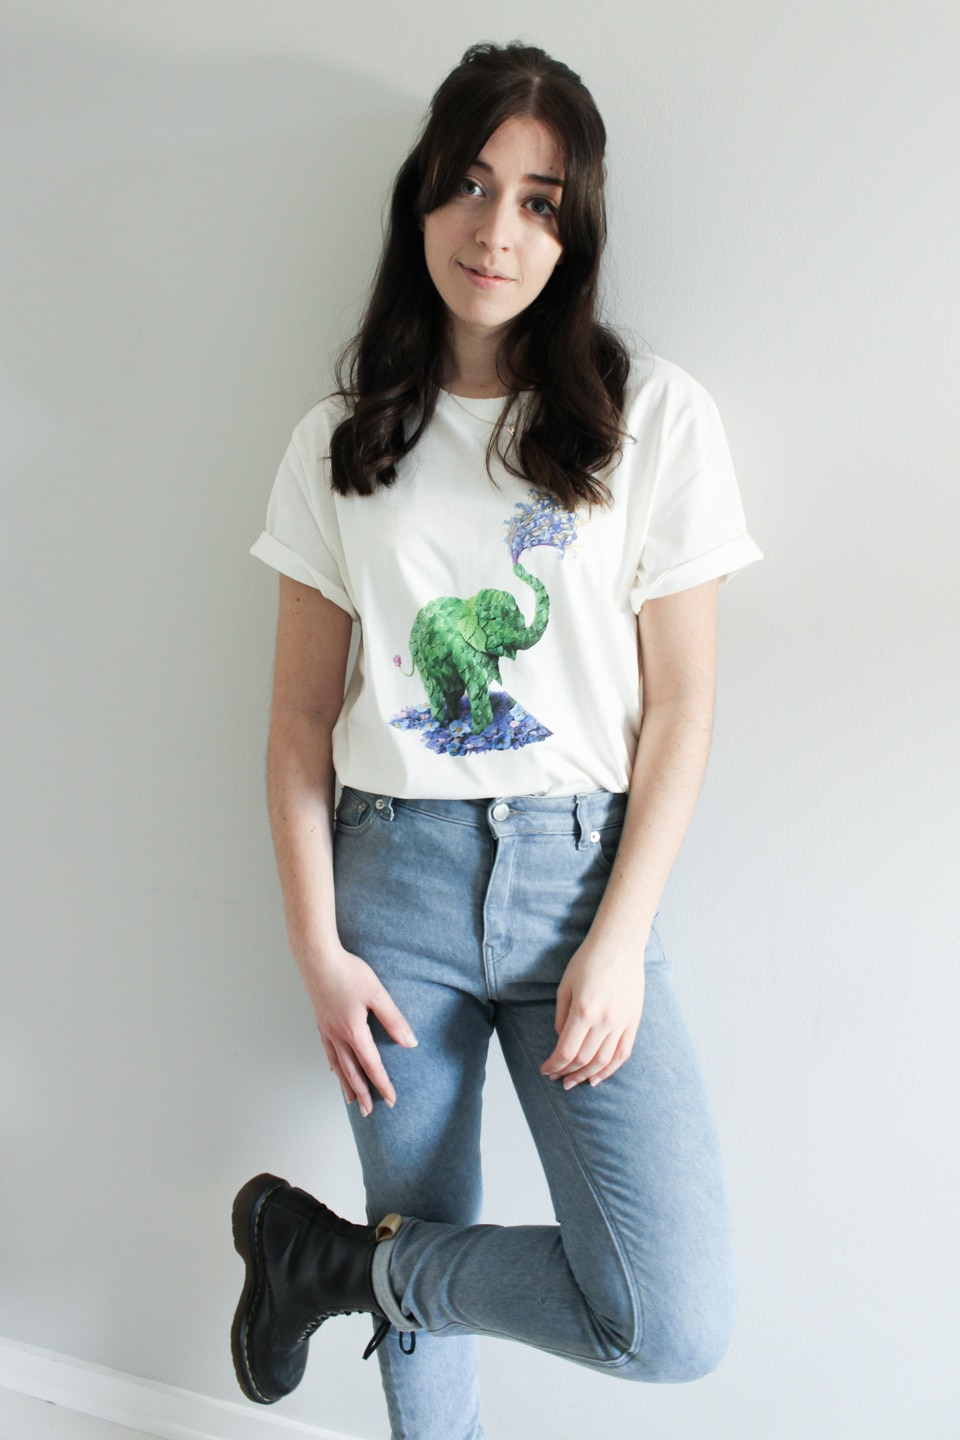 Besma wears Pangaia t-shirt with MUD jeans and vegan leather Dr Martens